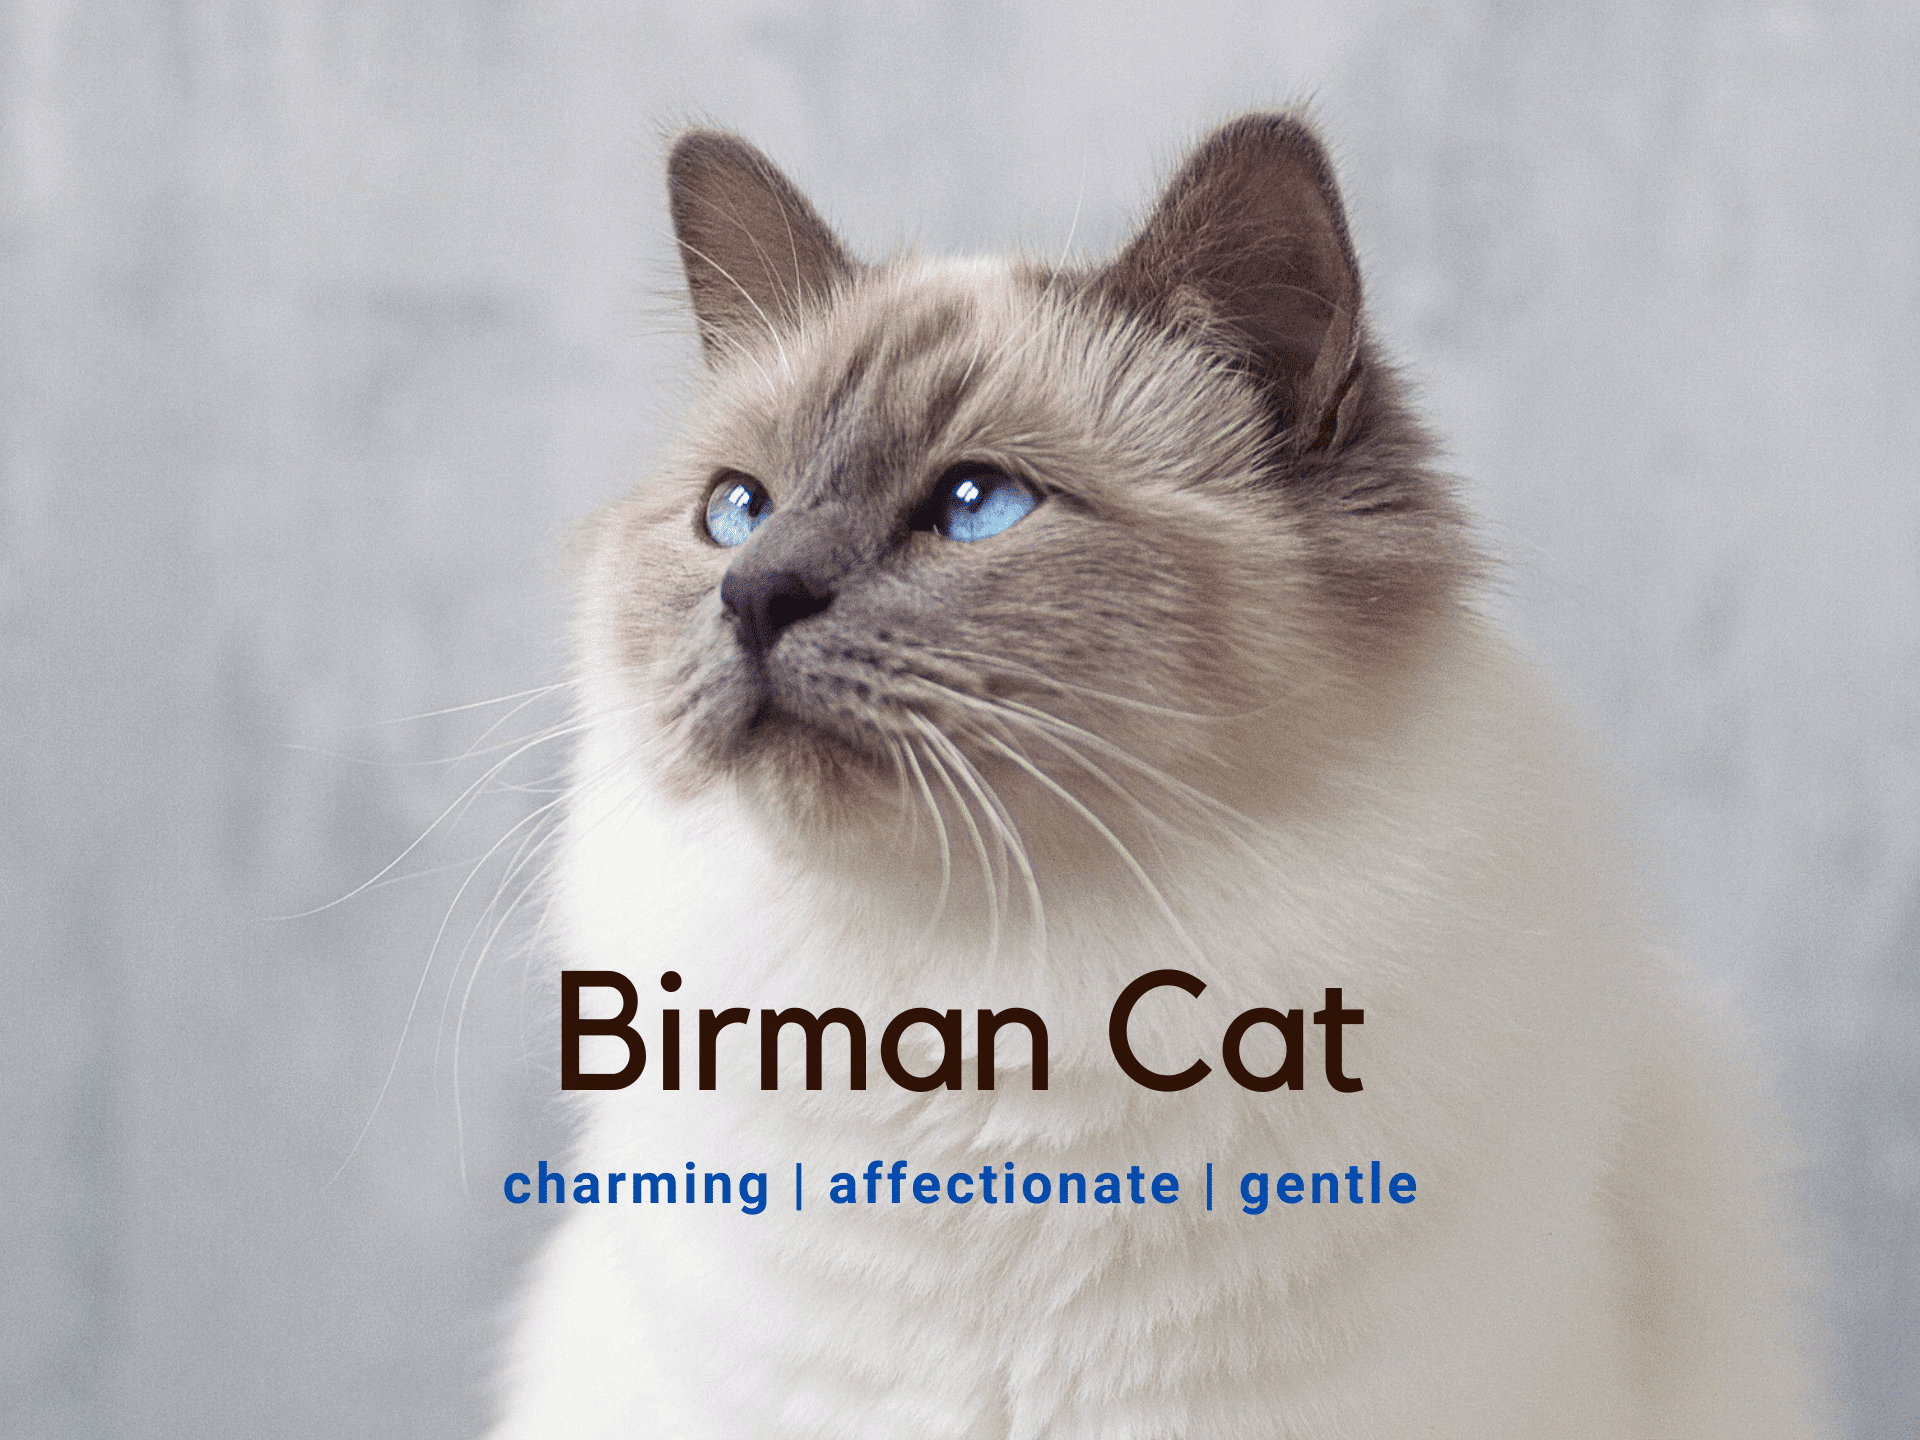 Birman Cat - Breed Information